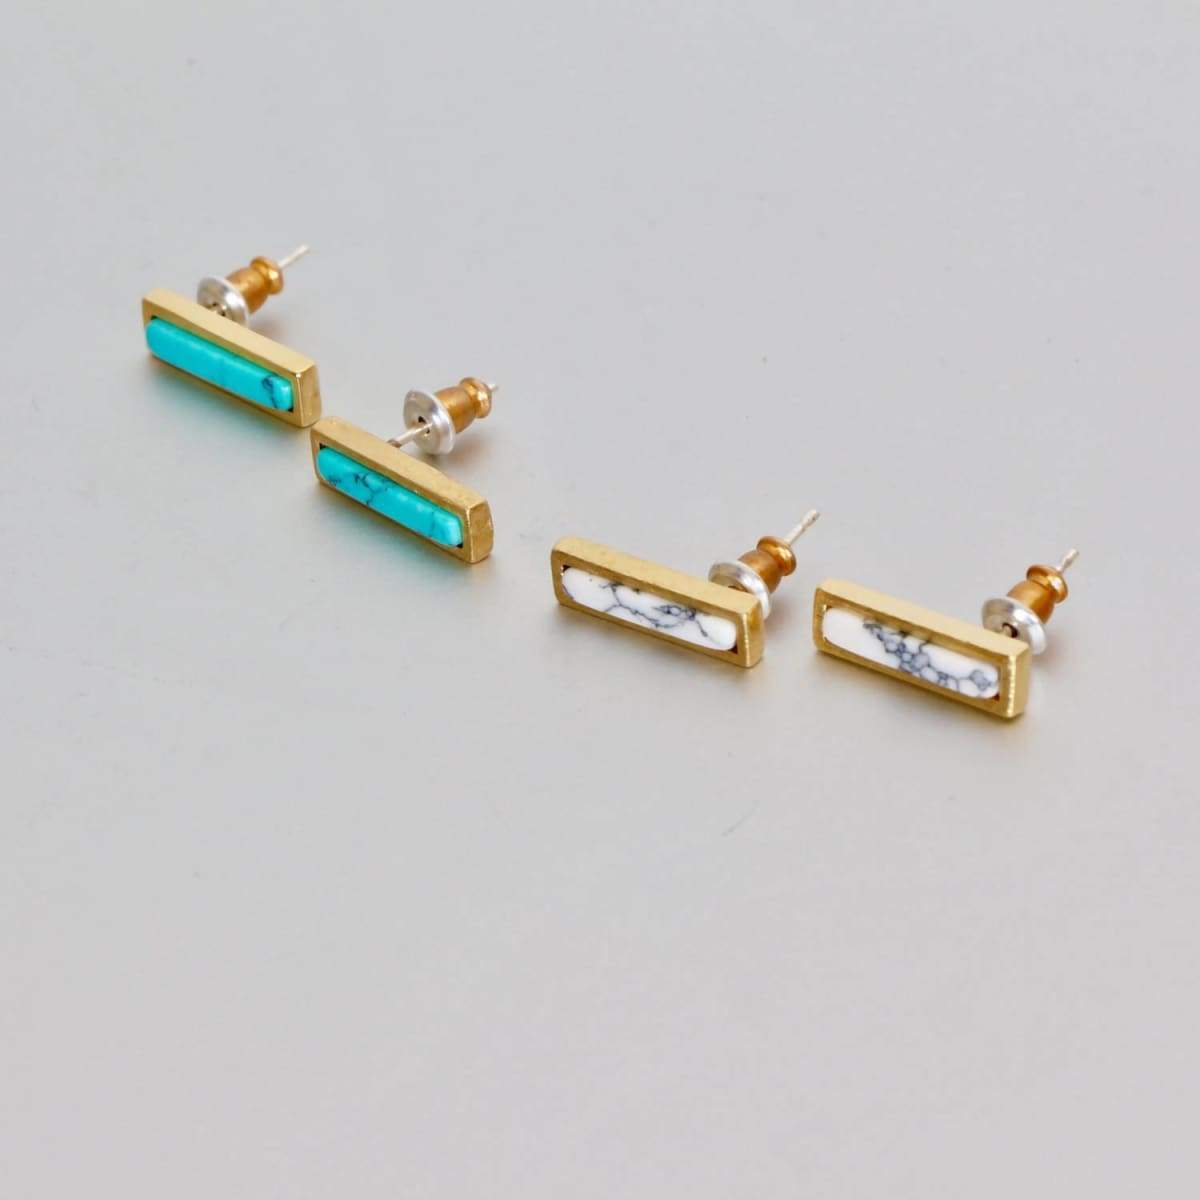 Earrings Earring Sets,Howlite And Turquoise Bar Stone Earrings,Gold Dipped Gift Jewellery Geometric Jewelry Minimalist (ESET1)